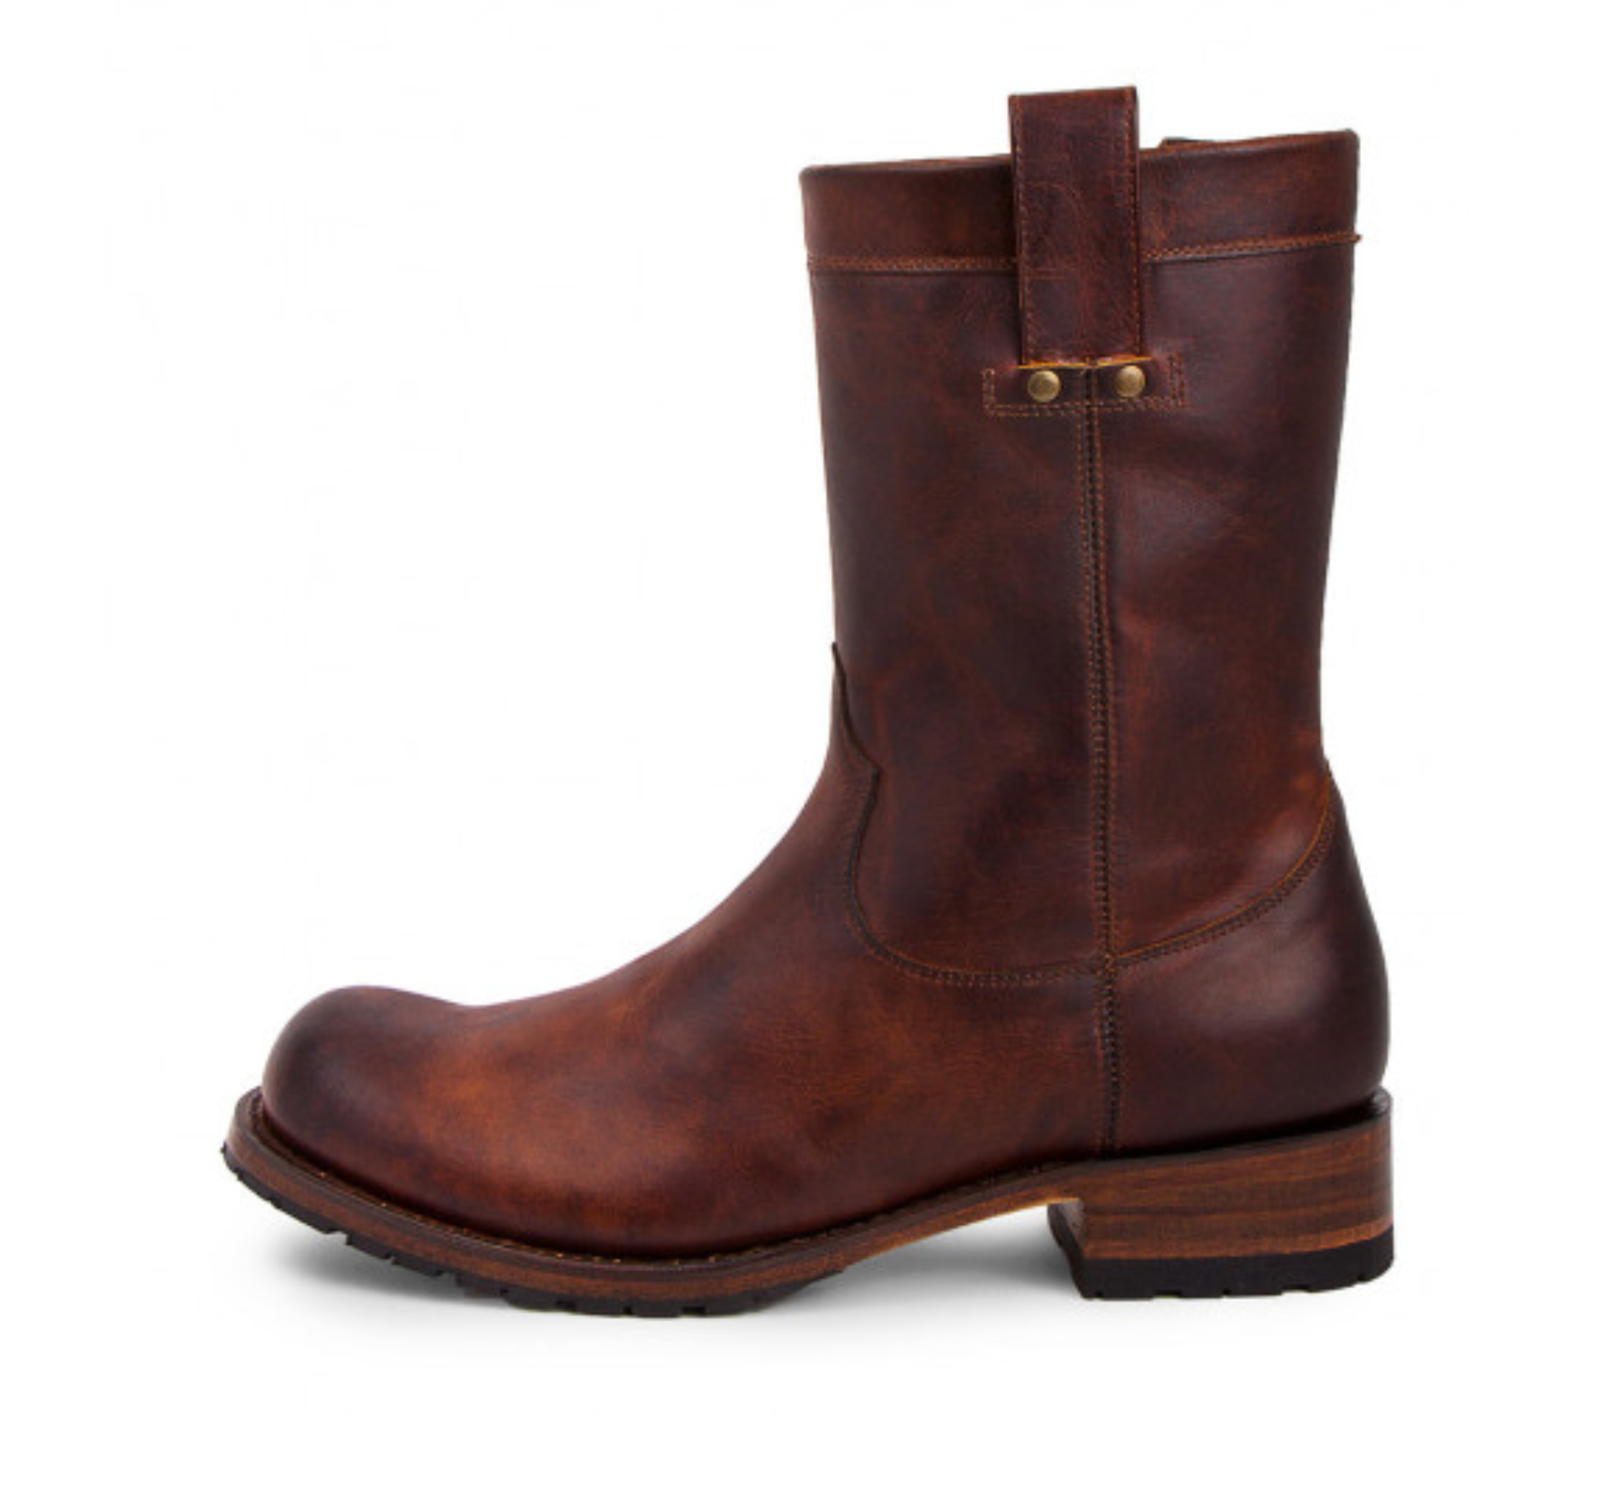 7133 Sendra boots western brown Superbe promo